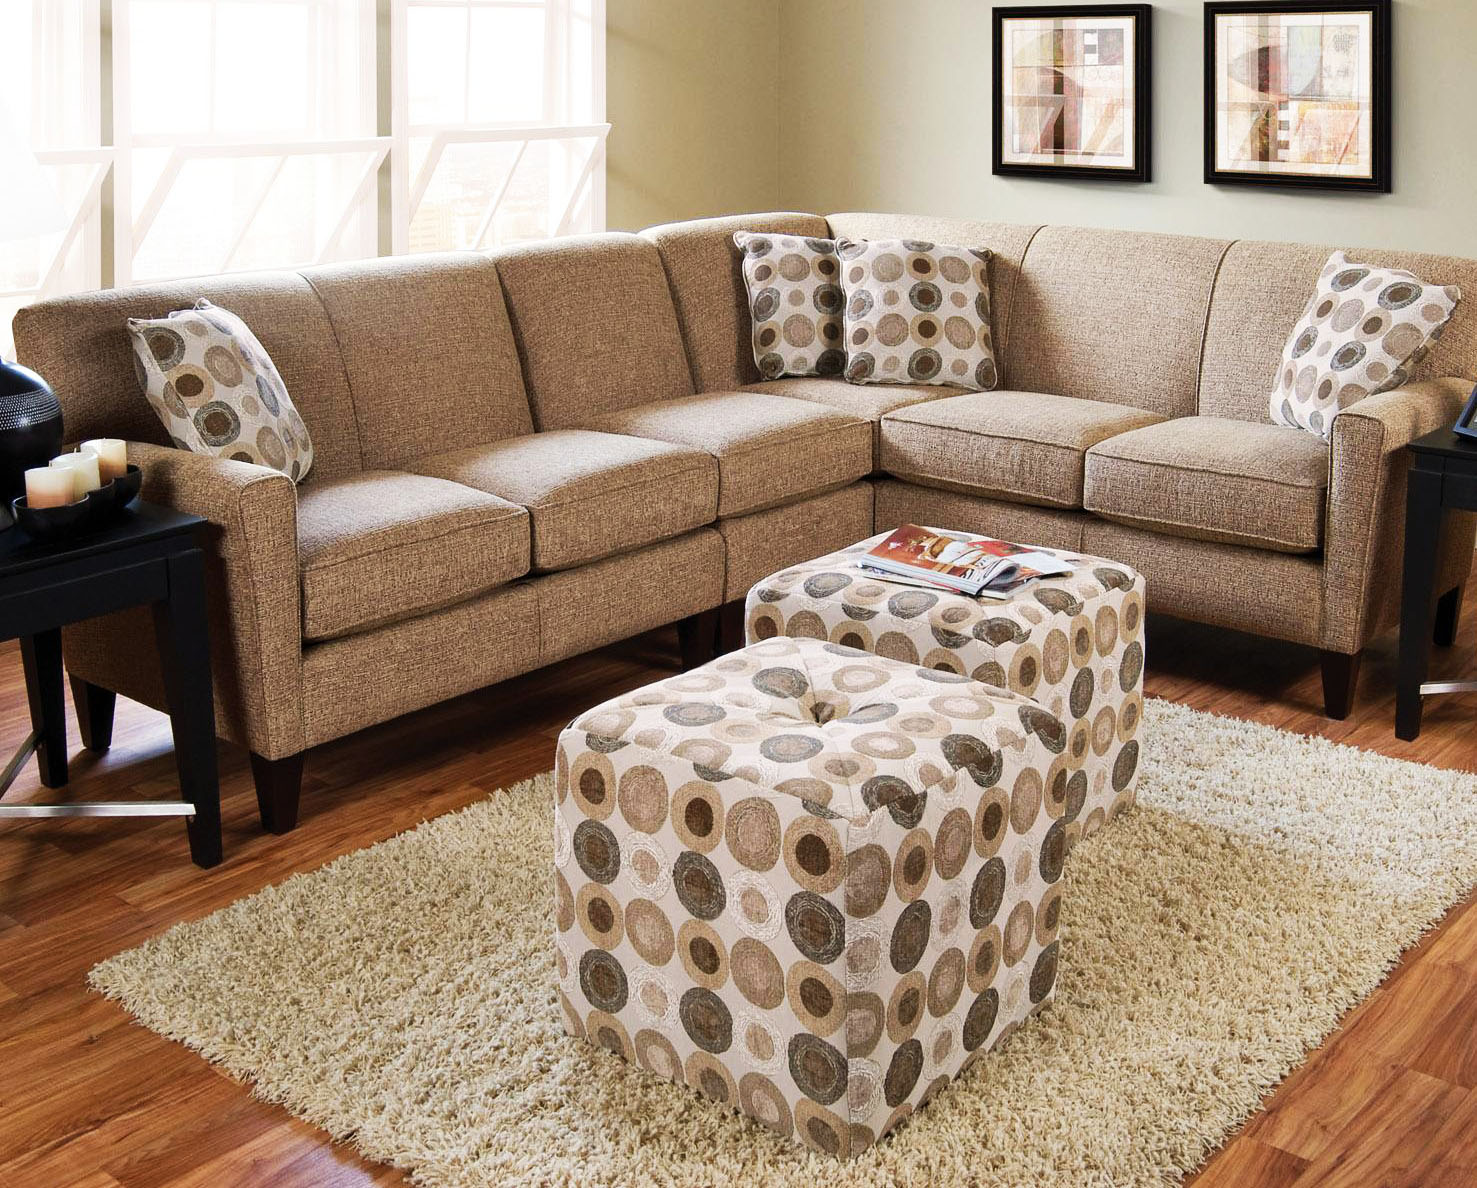 sectional sofa for small spaces sectional sofas for small spaces with recliners ideas YNGGAPP